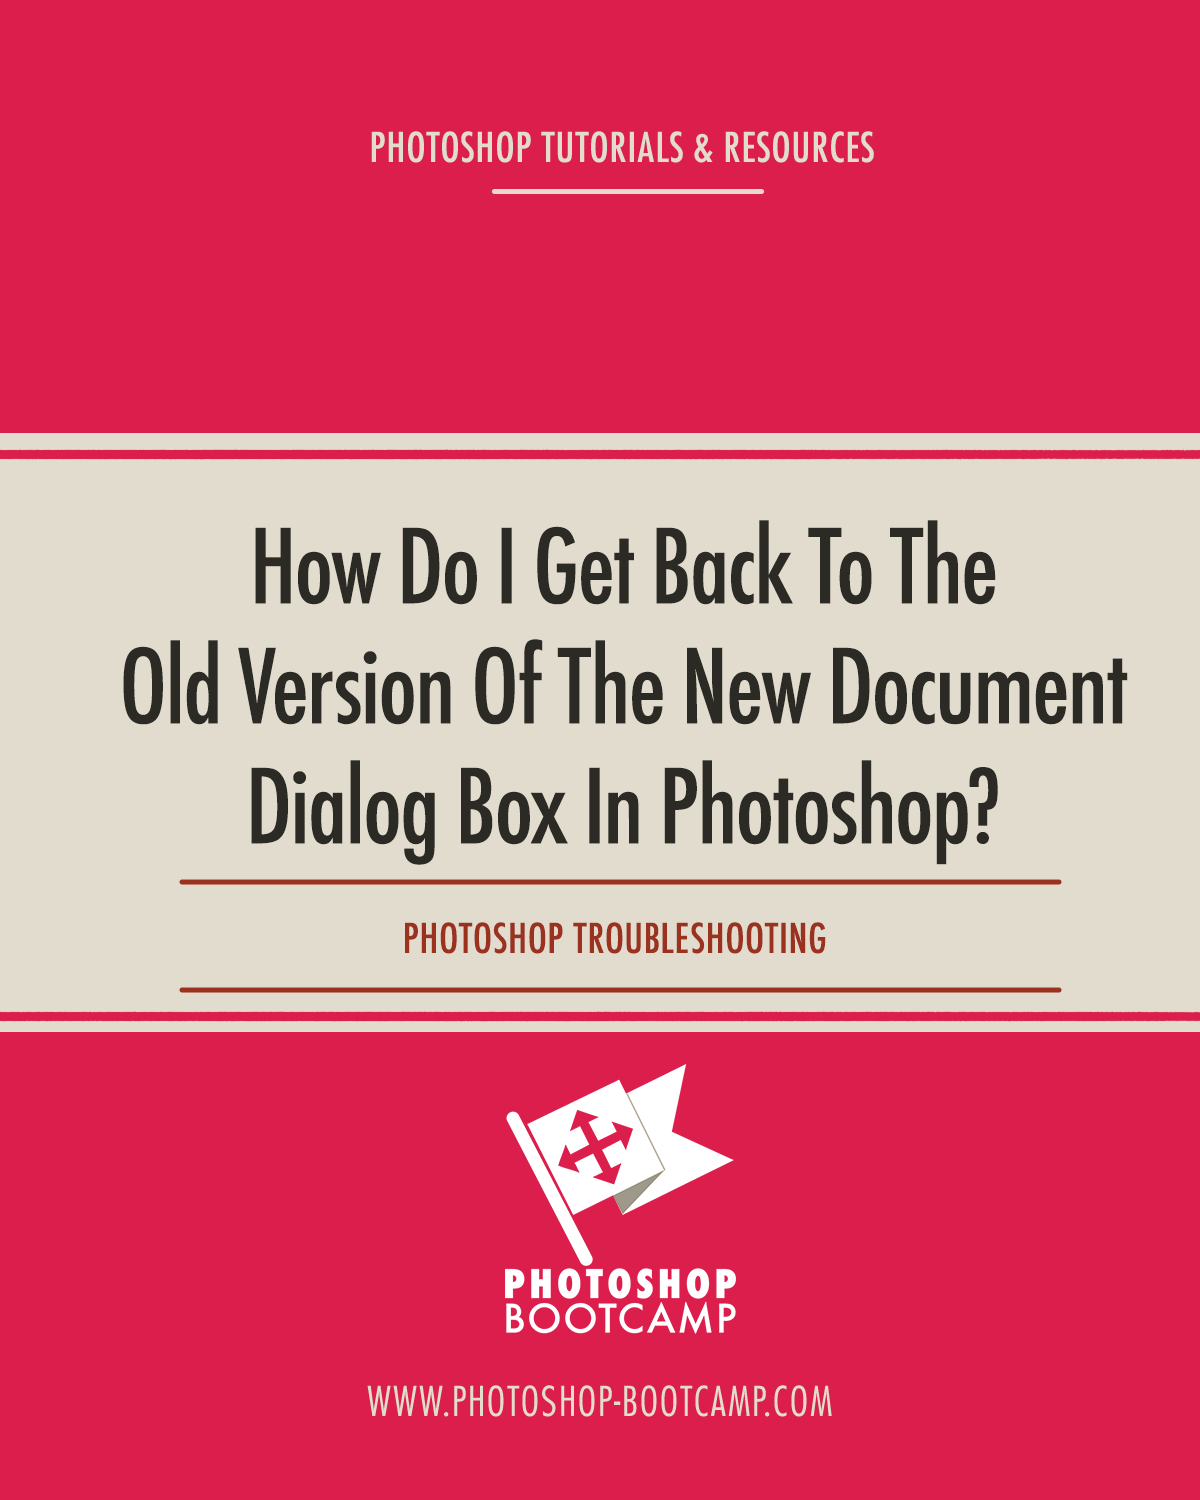 Photoshop Troubleshooting: How Do I Get Back To The Old Version Of The New Document Dialog Box?